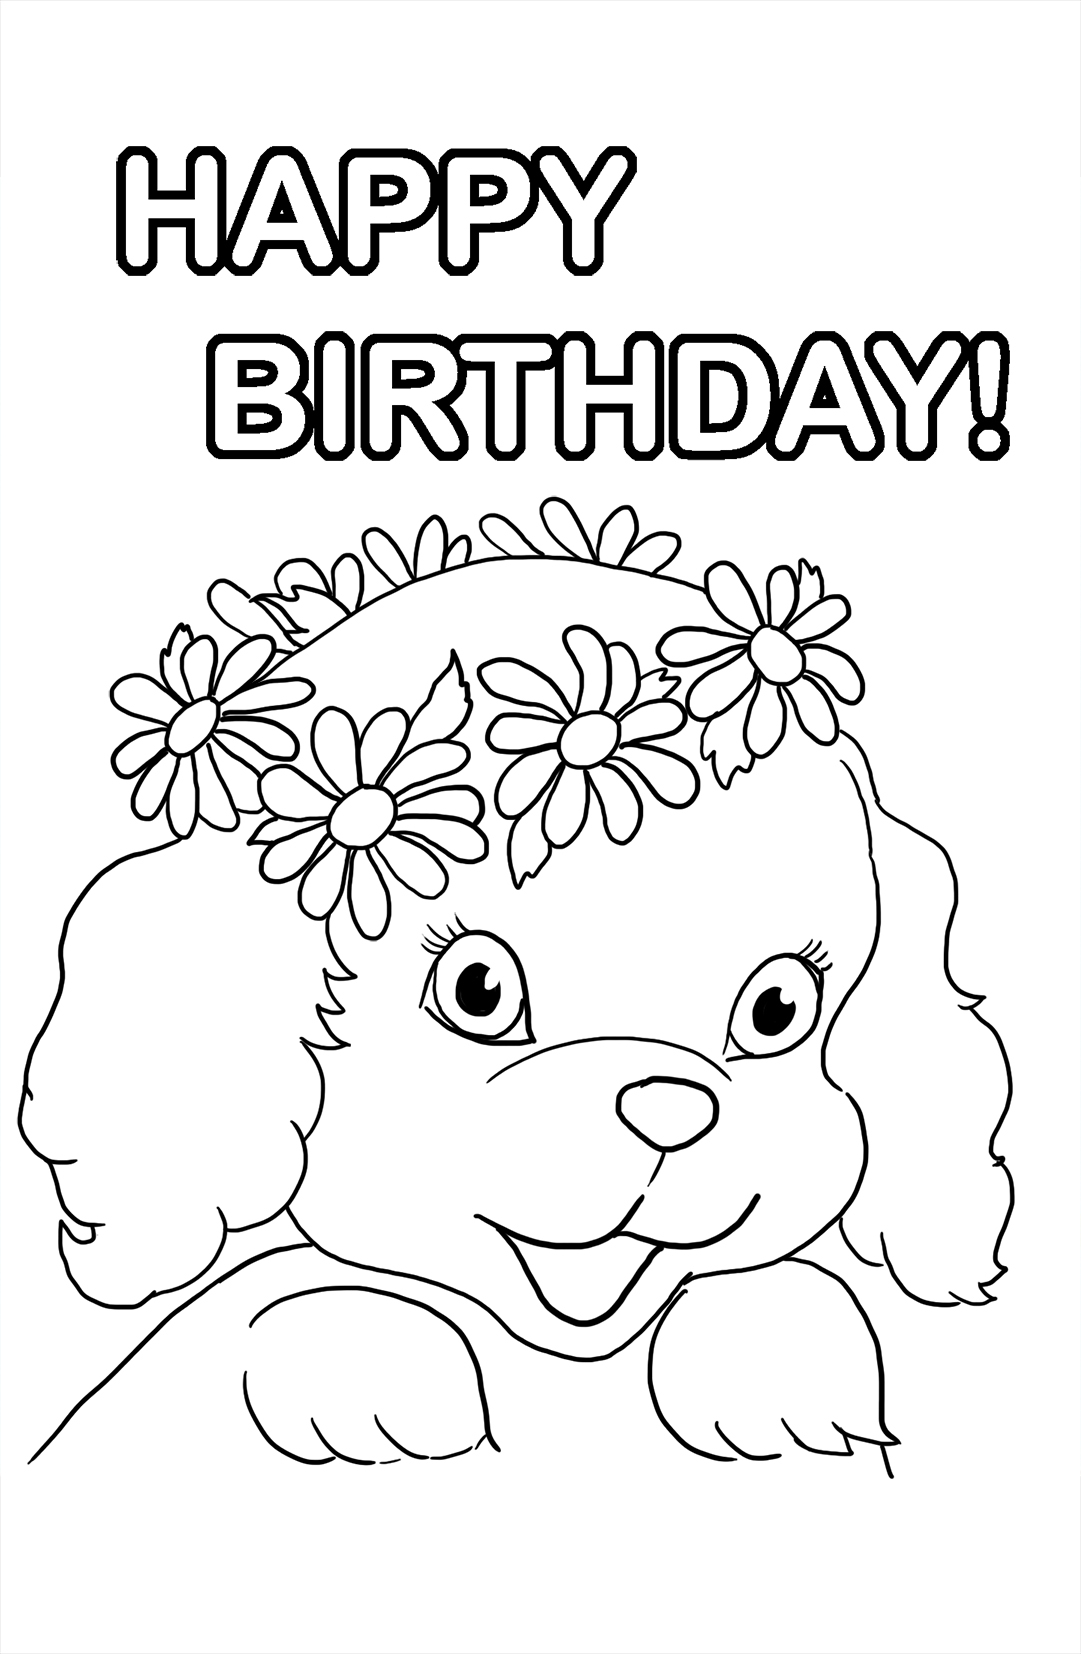 happy 7th birthday coloring pages coloring pages 43 astonishing happy birthday coloring birthday coloring happy 7th pages